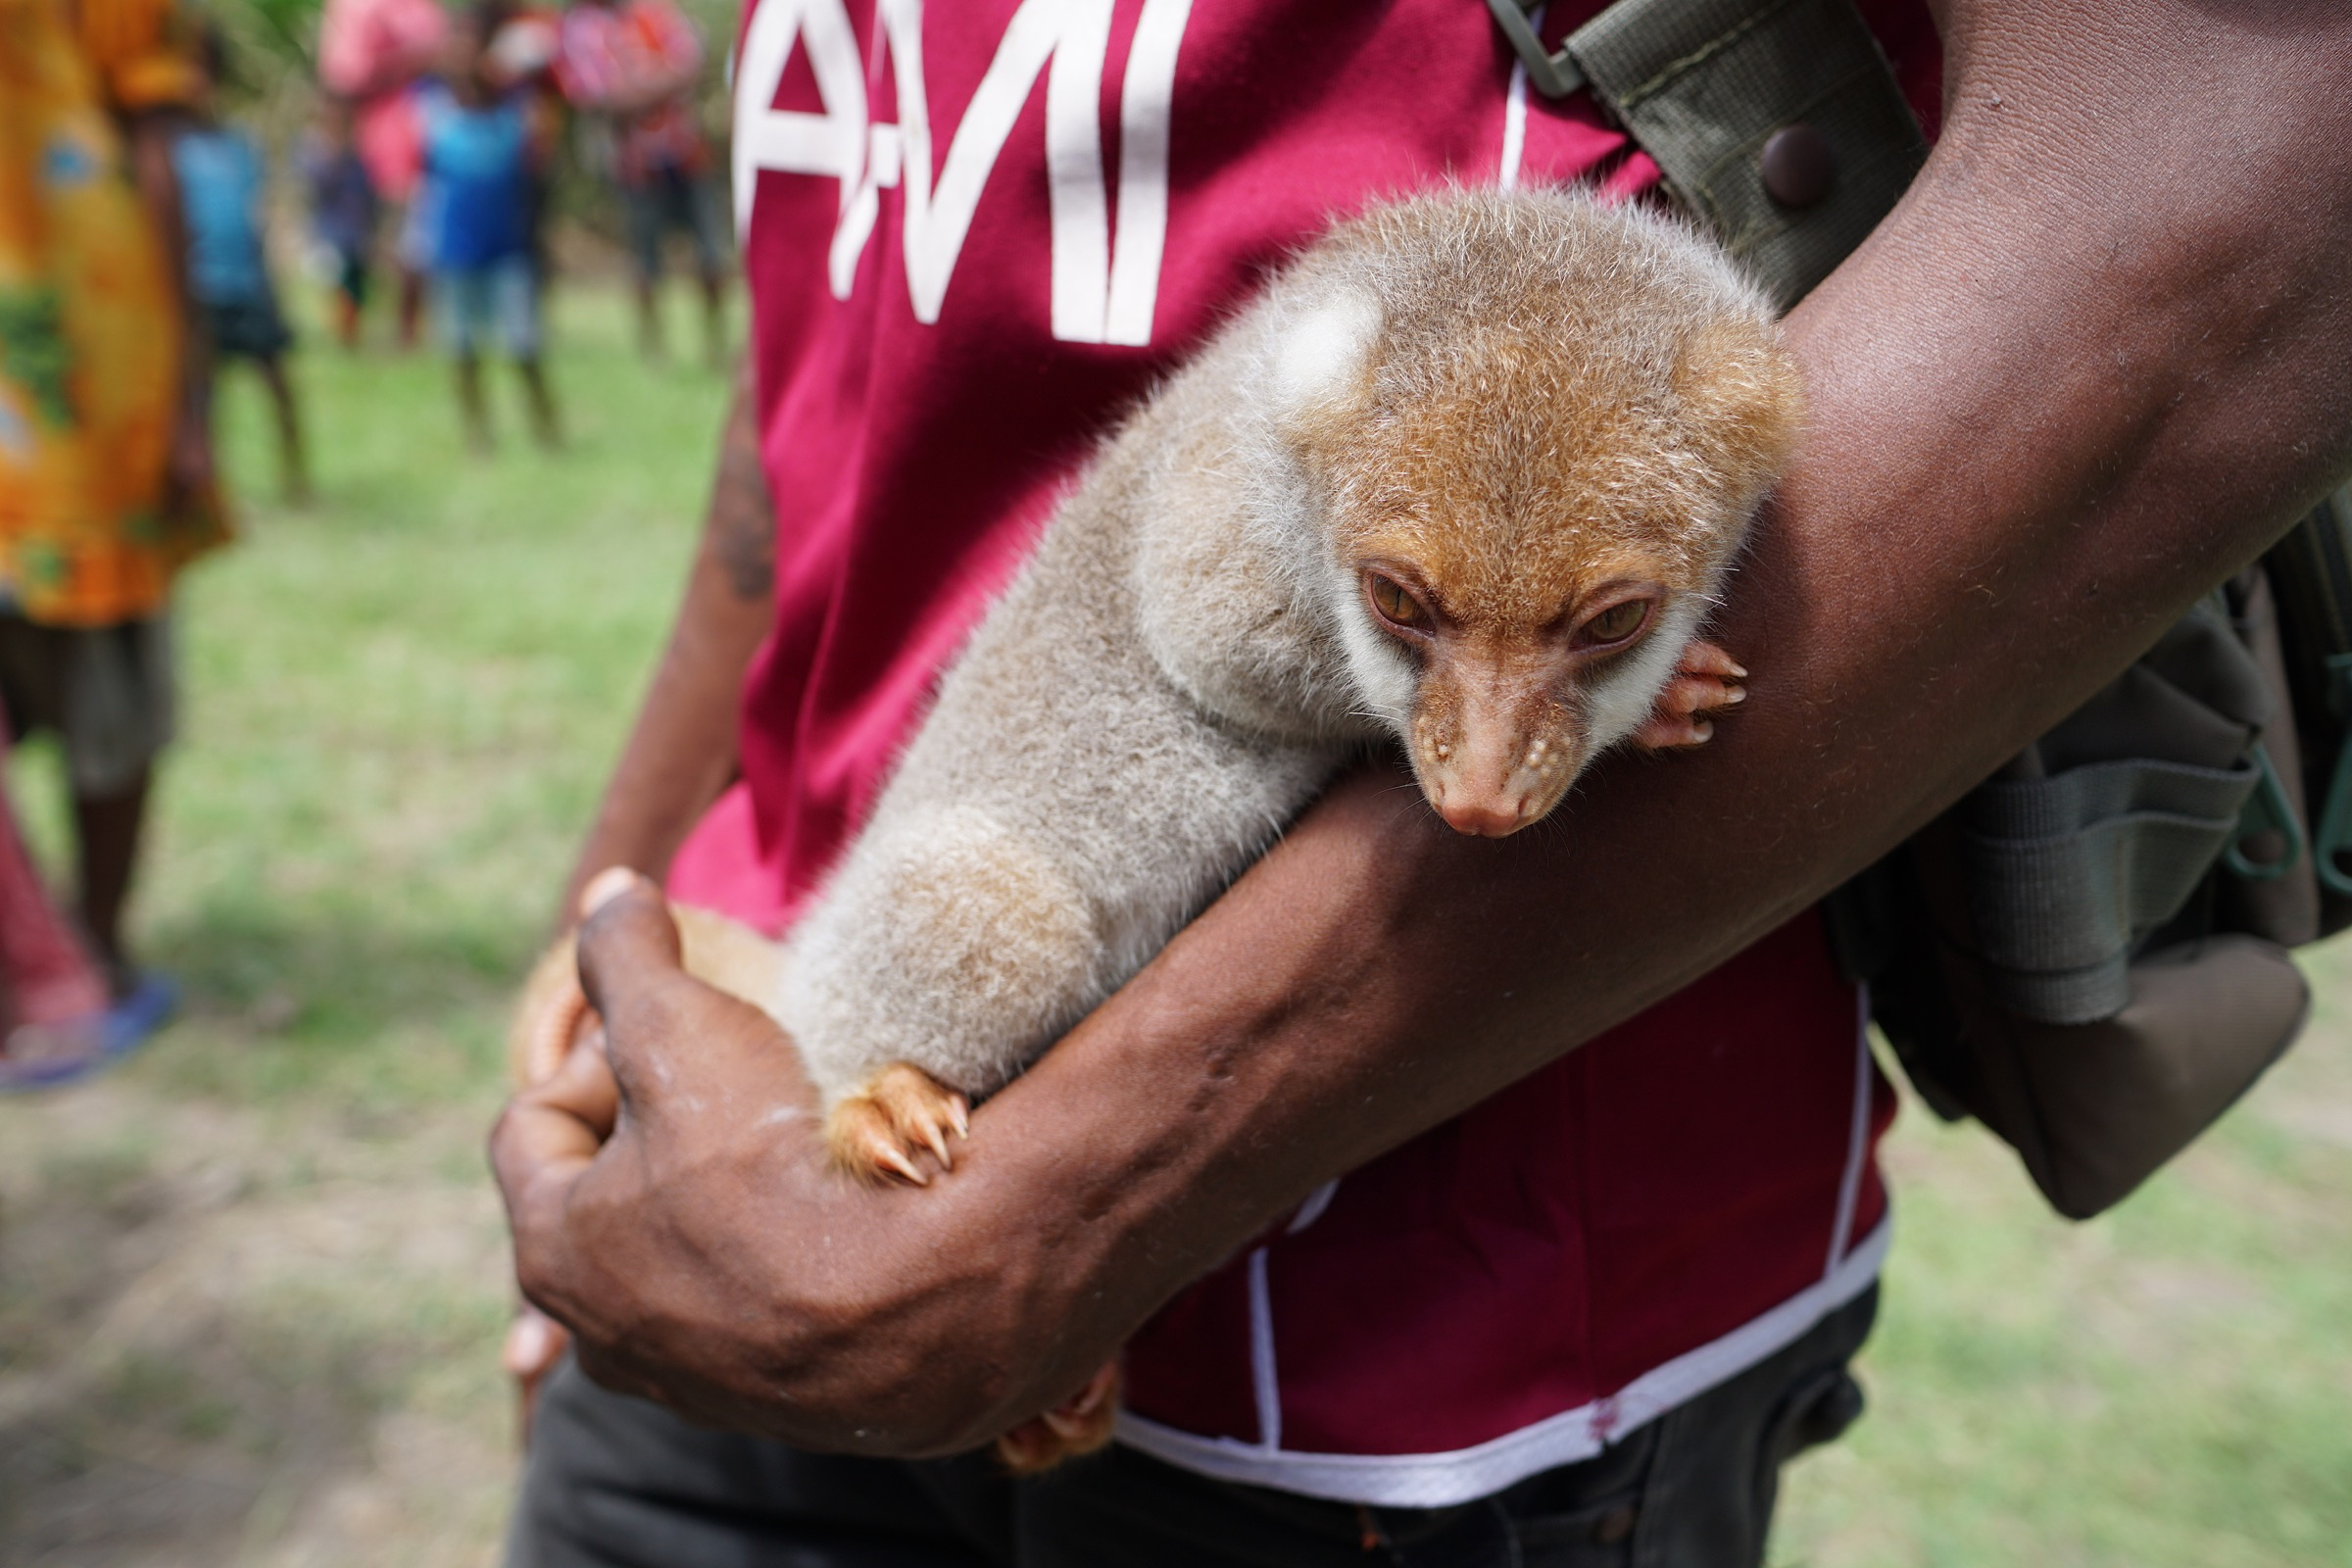 A young village resident cradles a common spotted cuscus (Spilocuscus maculatus) that he's taken as a pet. Photograph by Ethan Linck